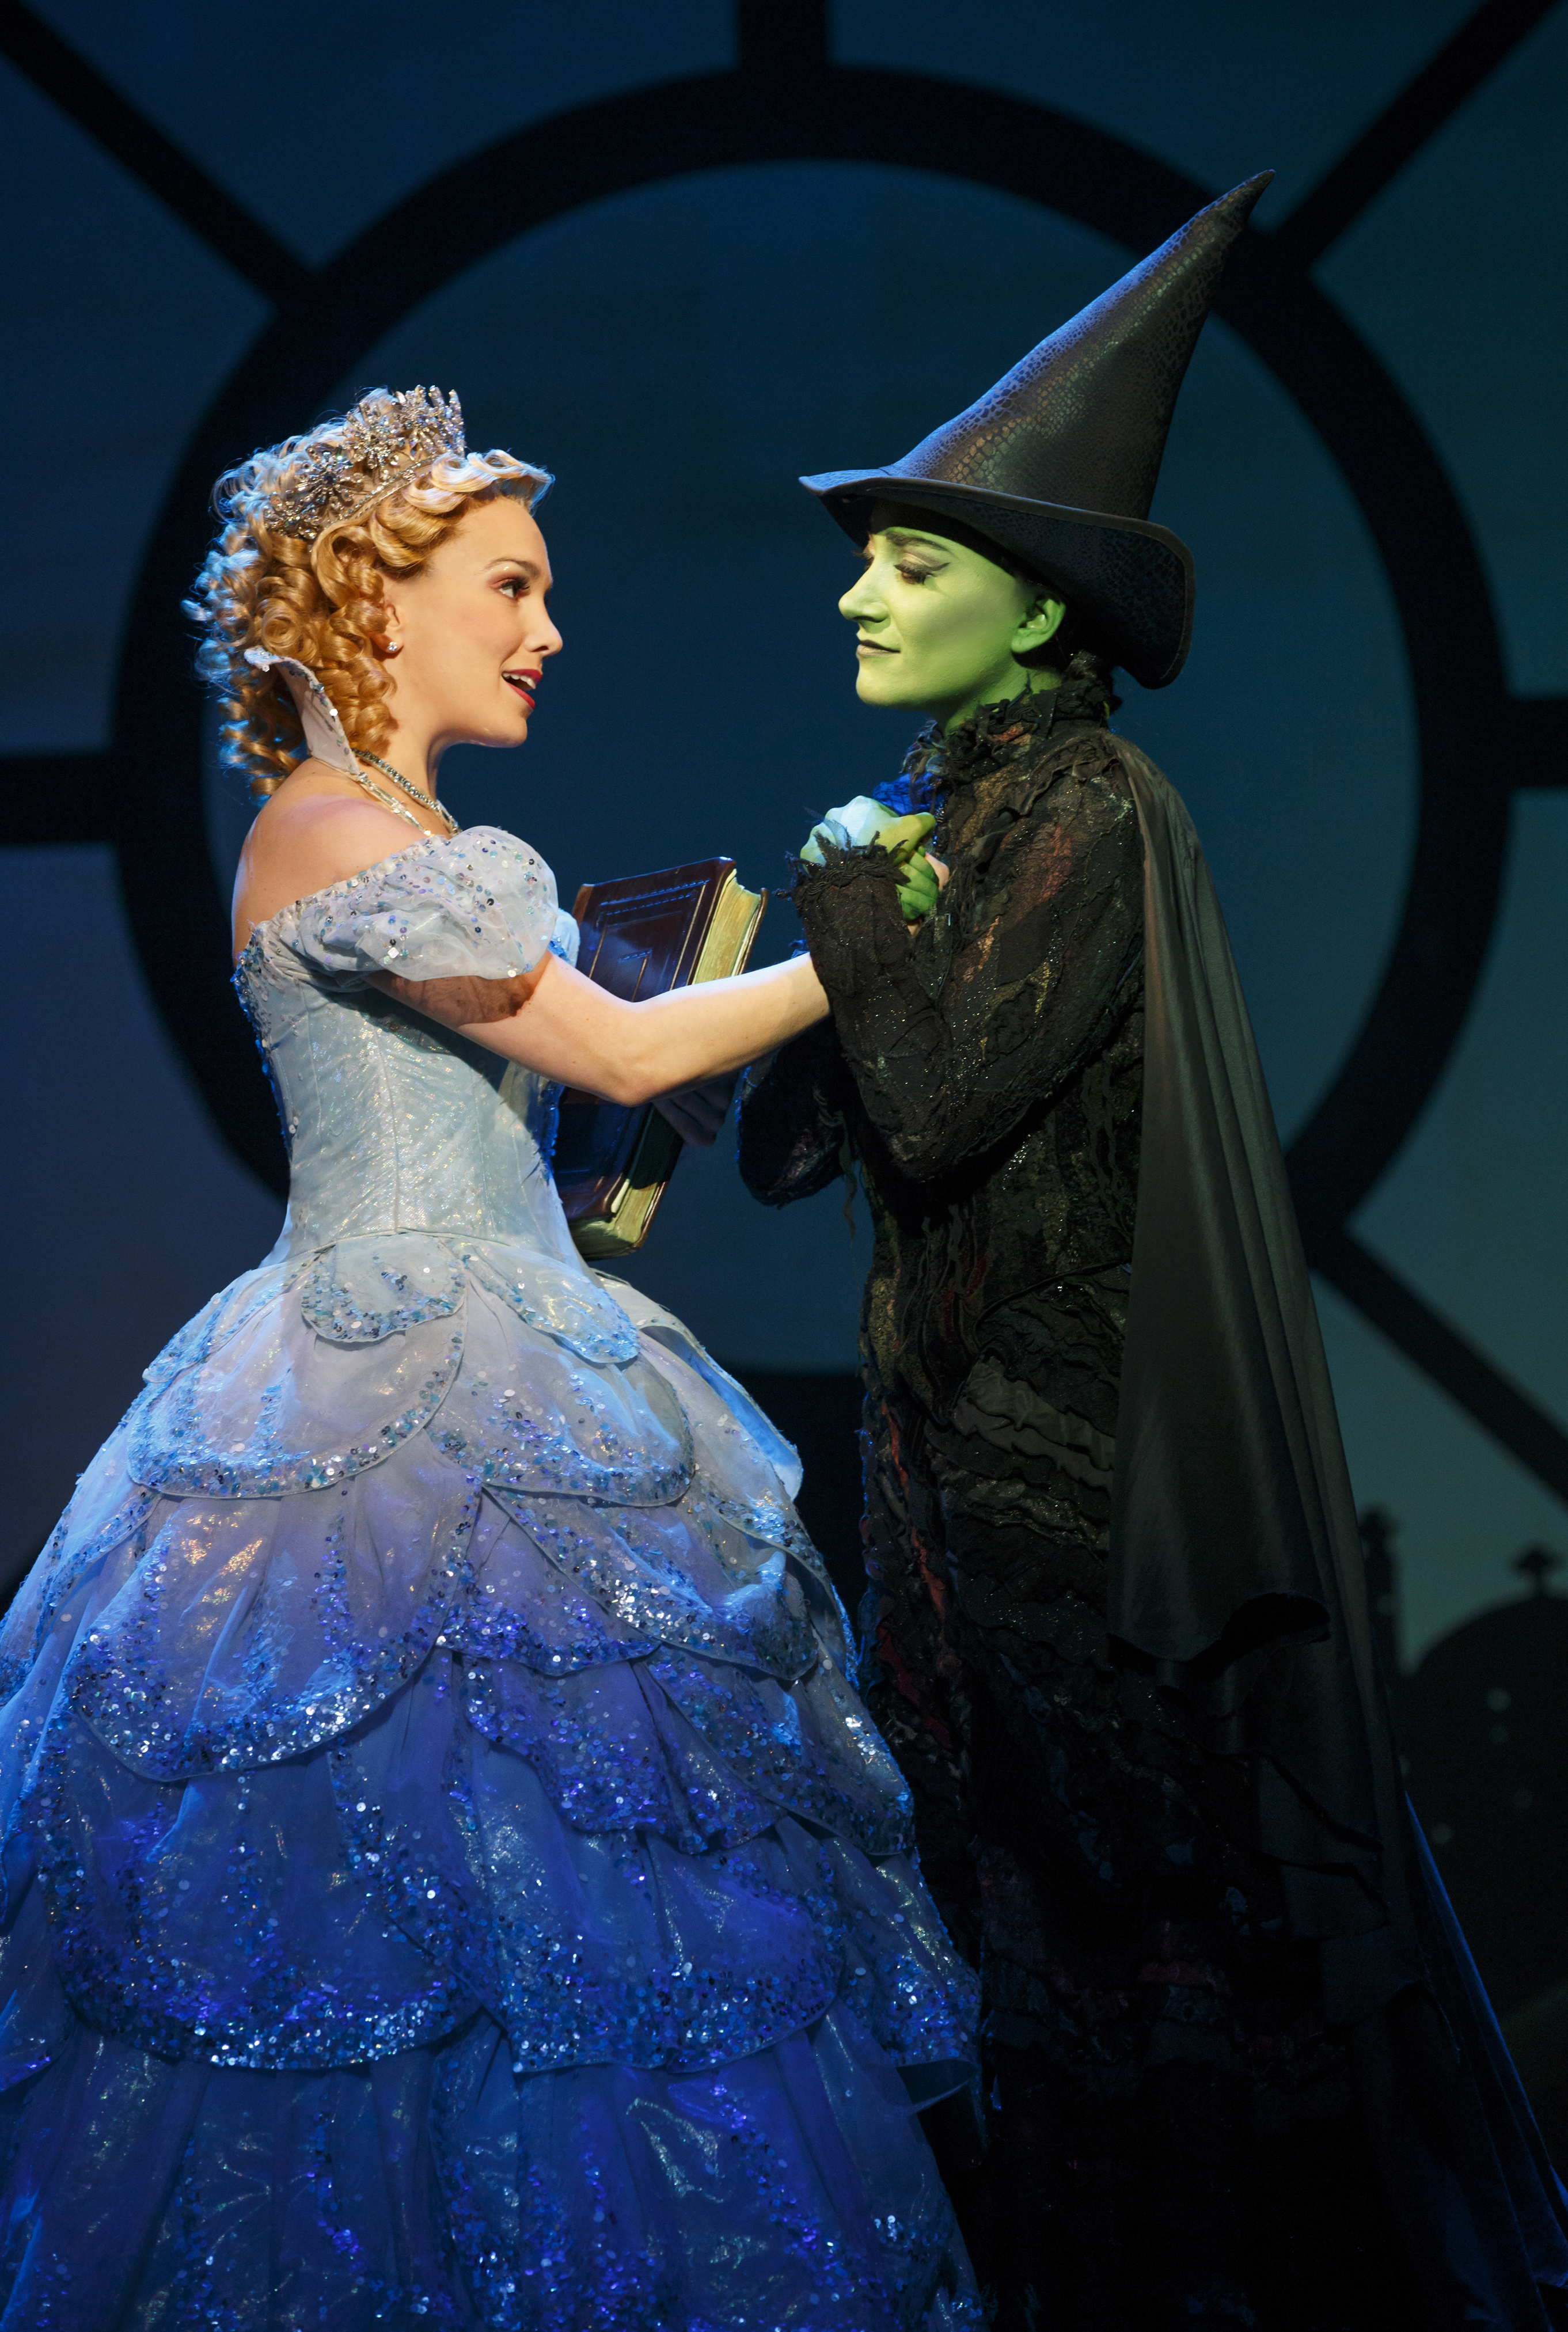 Witches story is Wicked good   The Spokesman-Review